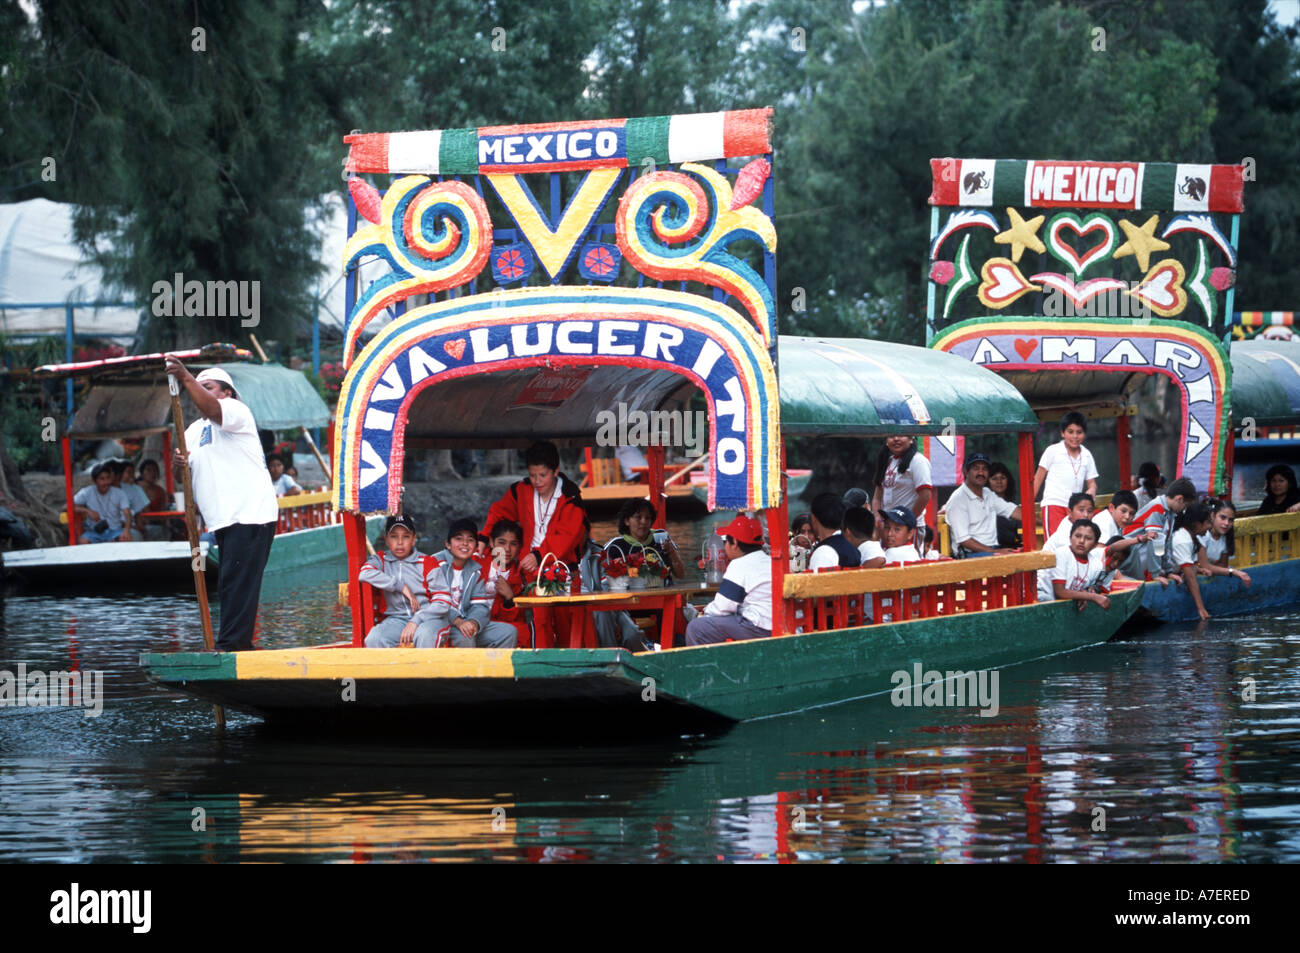 Mexico City, UNESCO patrimony site Xochimilco and trinjeras which tourists hire to be poled in the canals - Stock Image